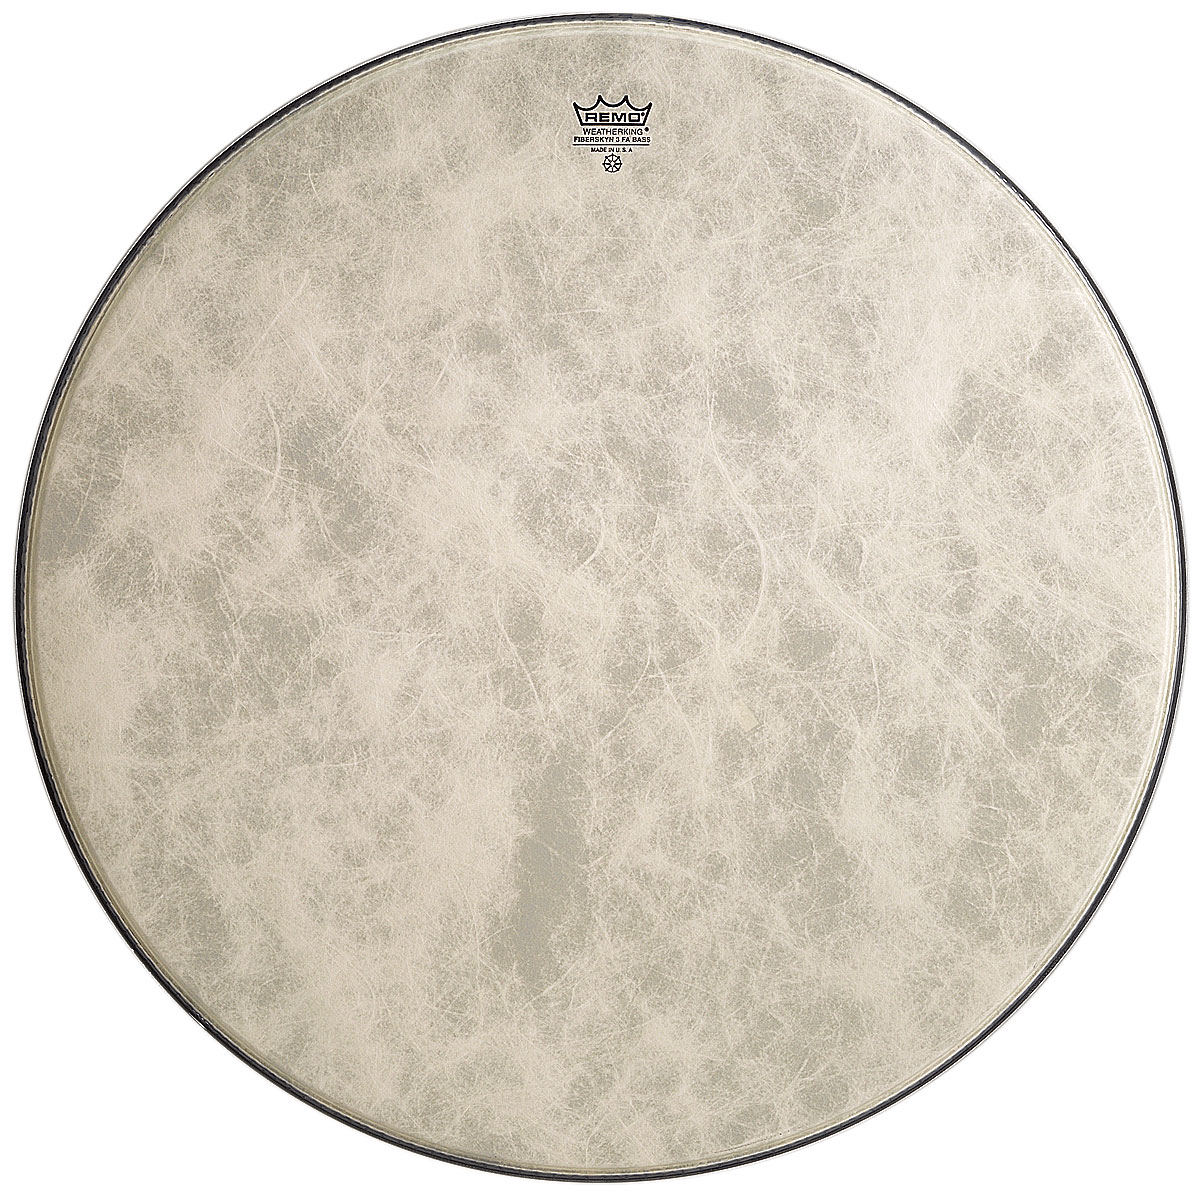 "Remo 26"" Ambassador Fiberskyn Bass Drum Head"